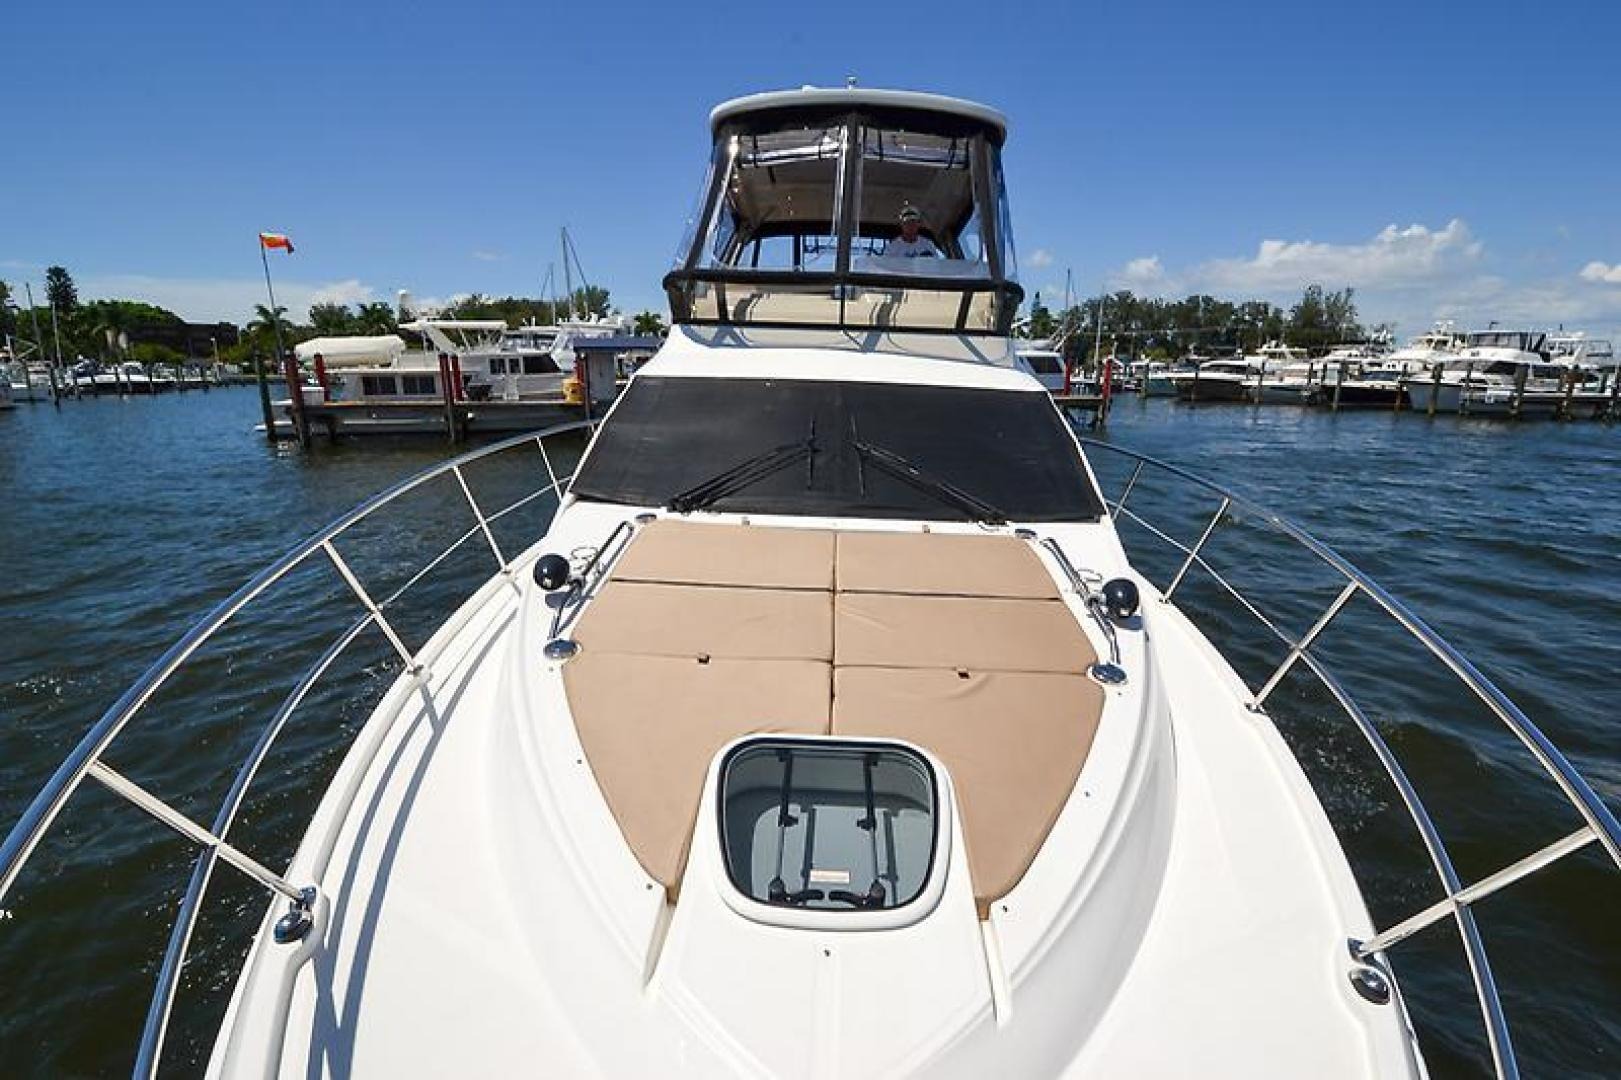 2017 Sea Ray 400 Fly-83.jpg